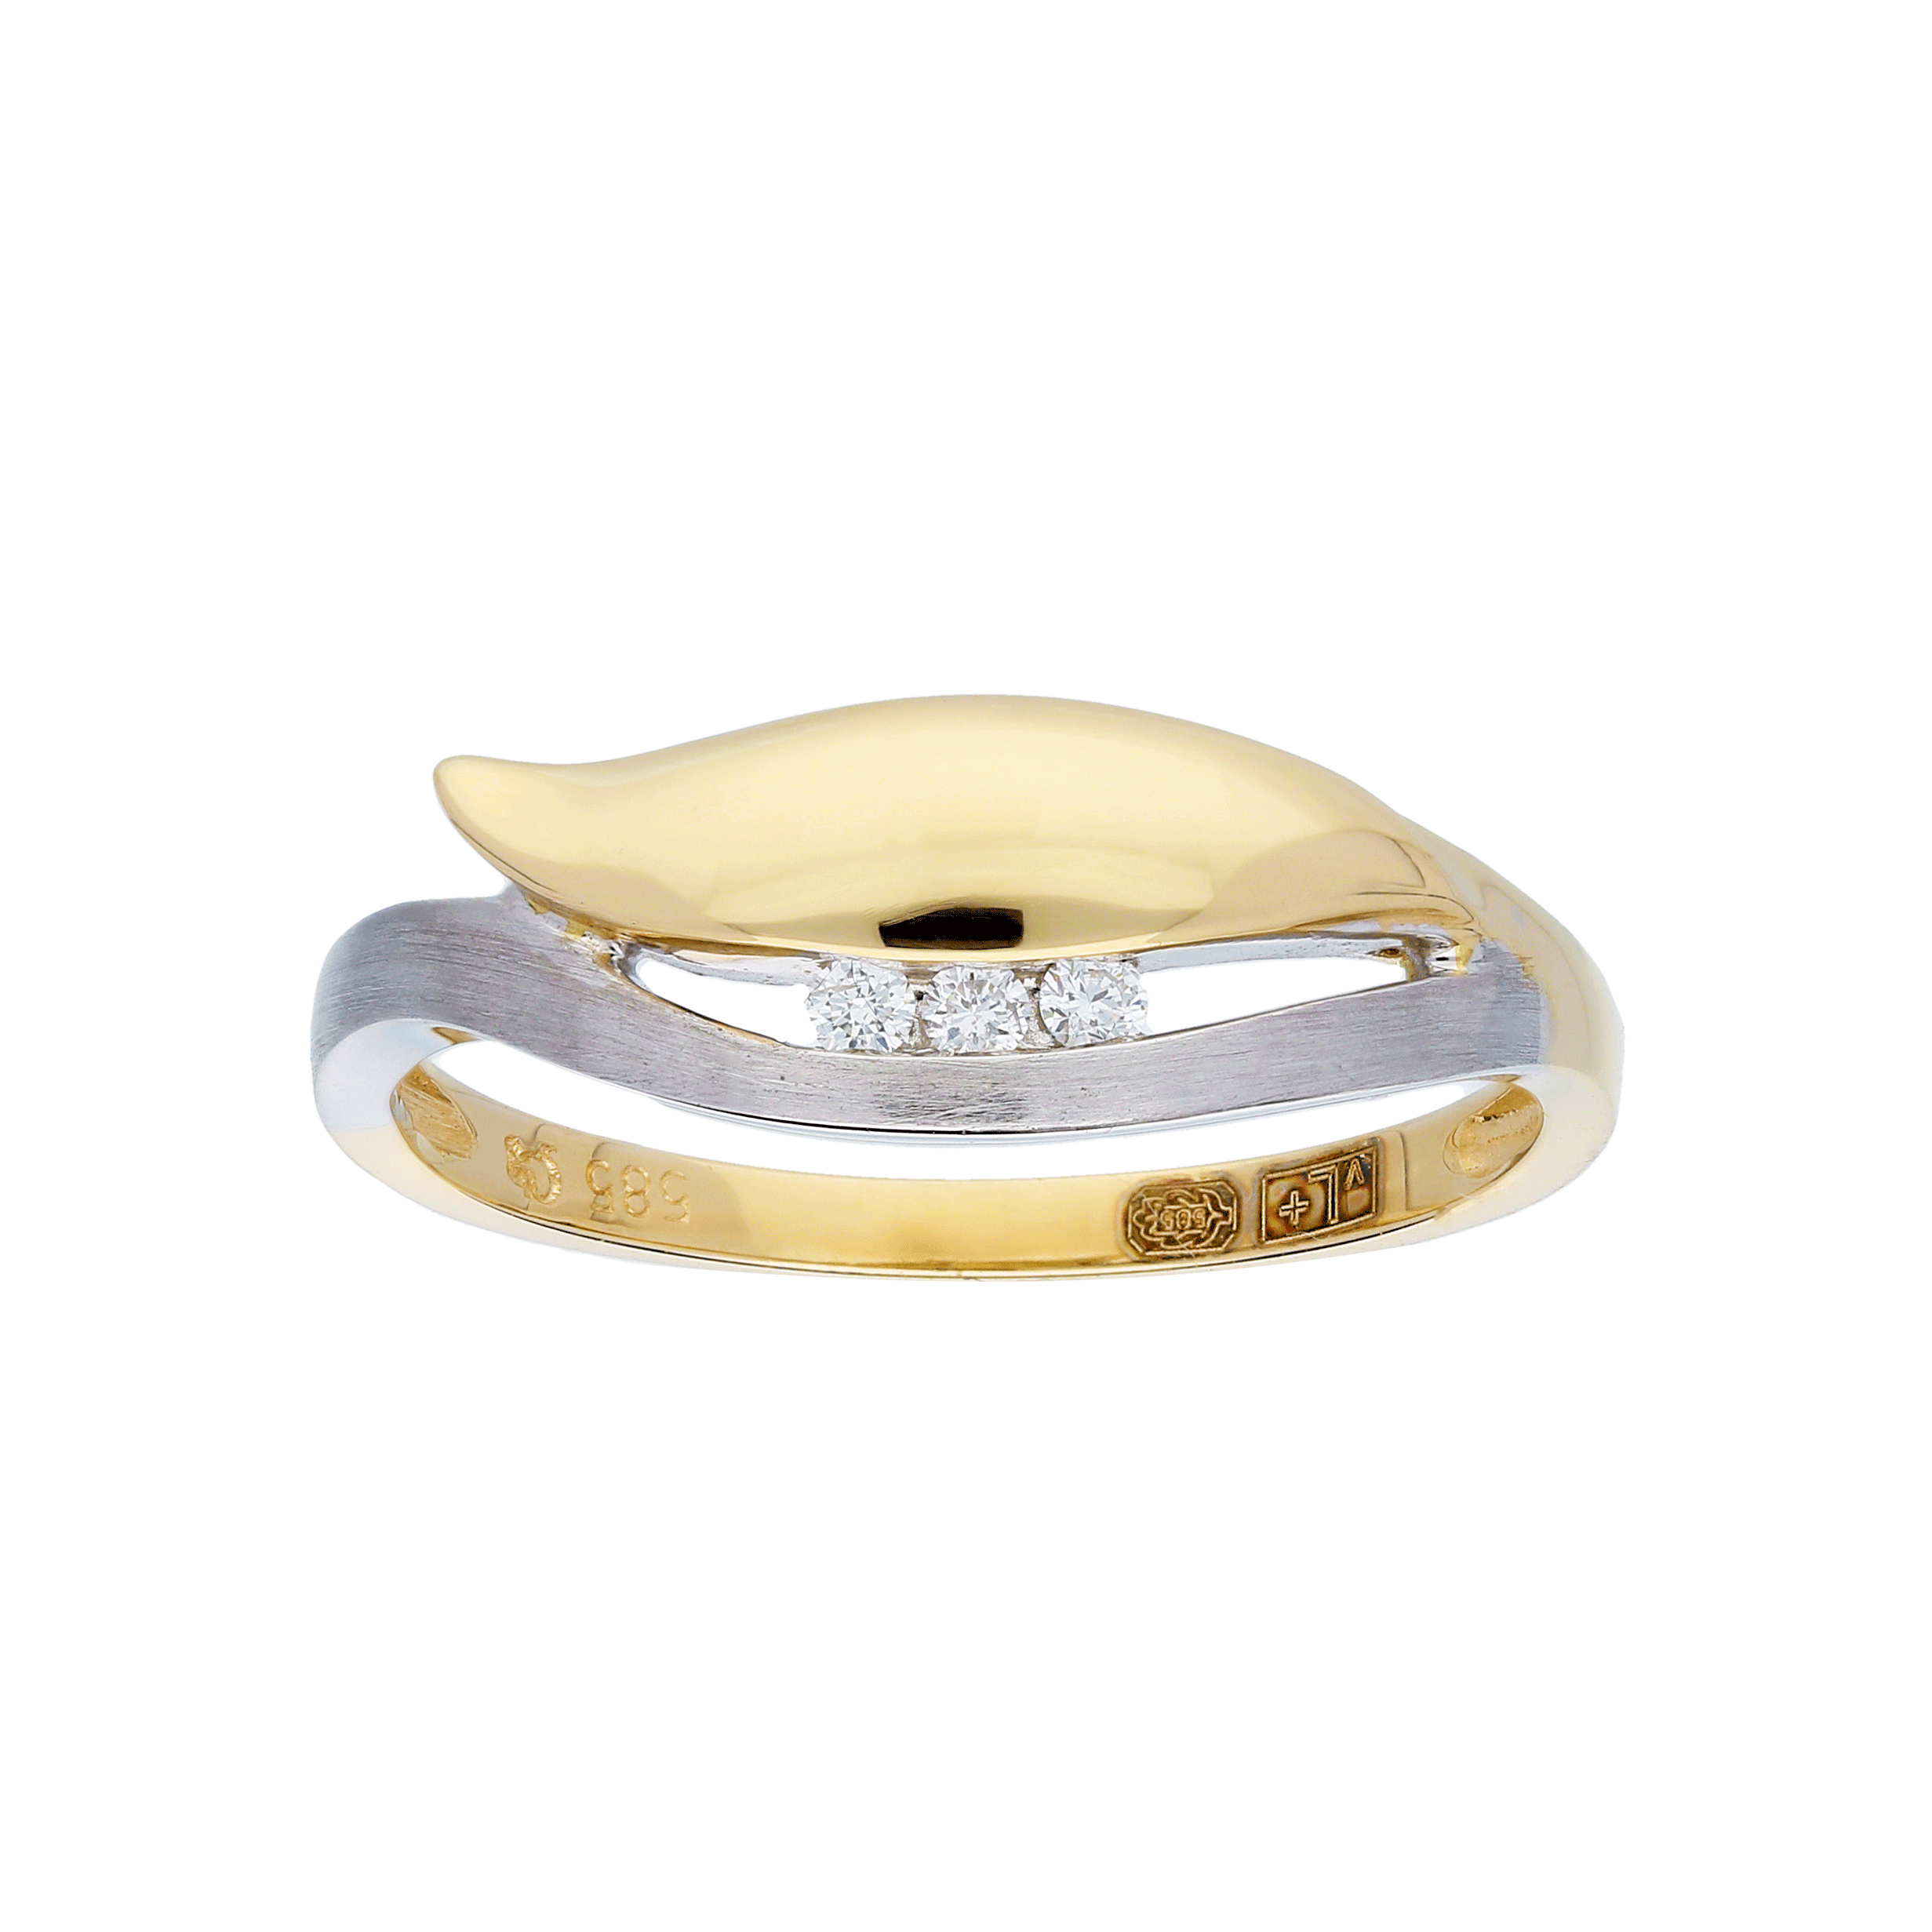 Glow Gouden Ring Bicolor Mat Glanzend Diamant 3 0.045ct G si 214.5252.56